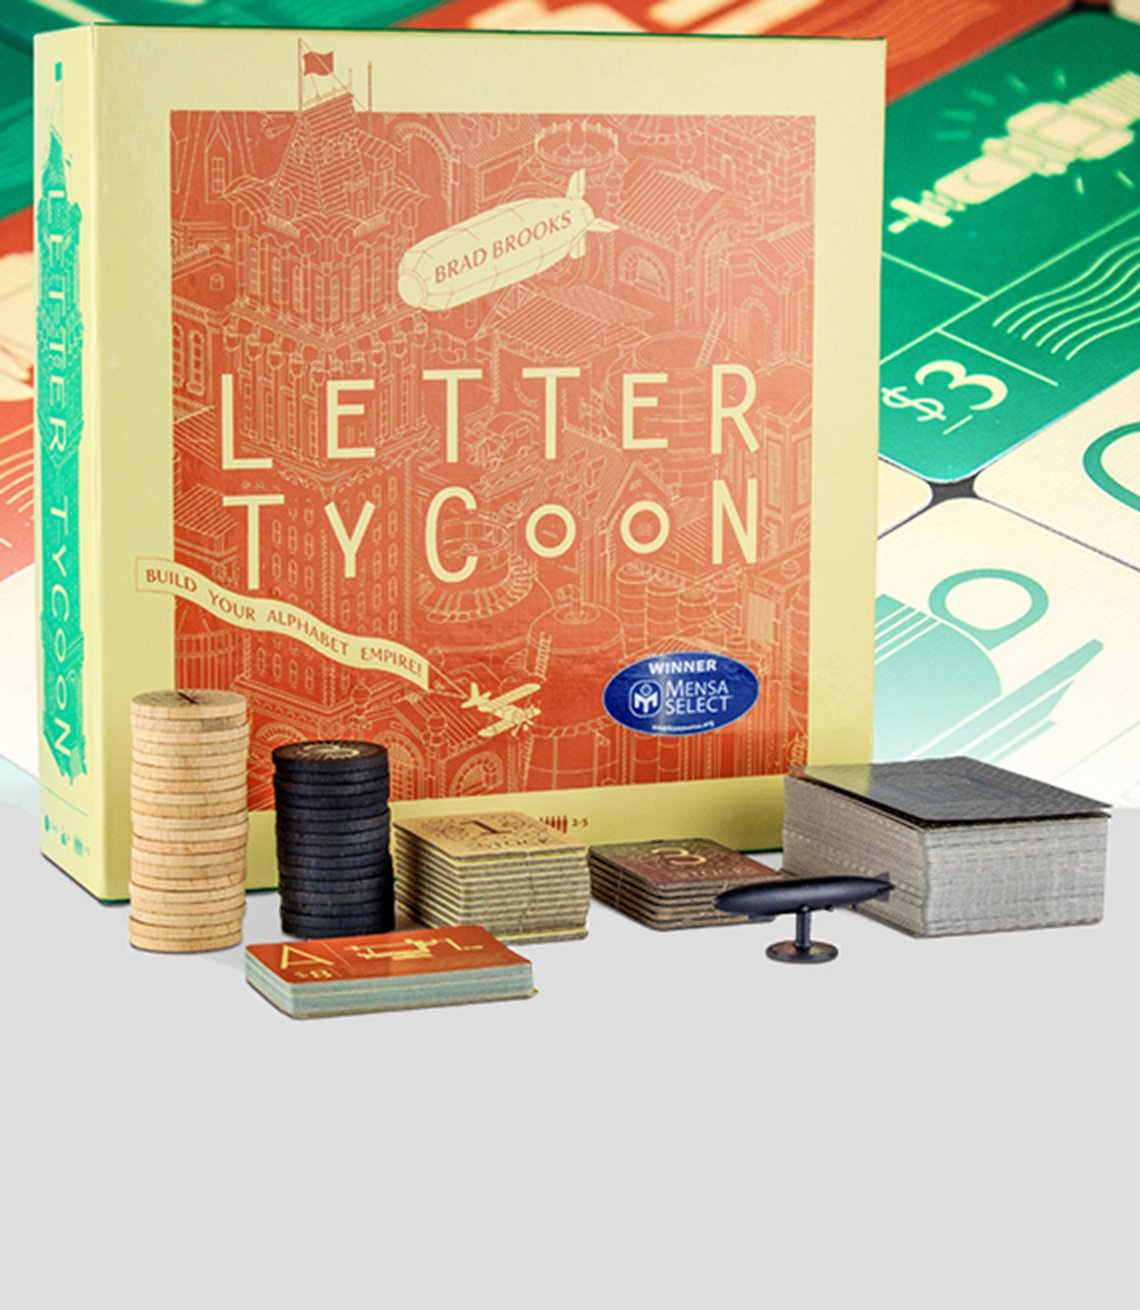 Letter Tycoon game box